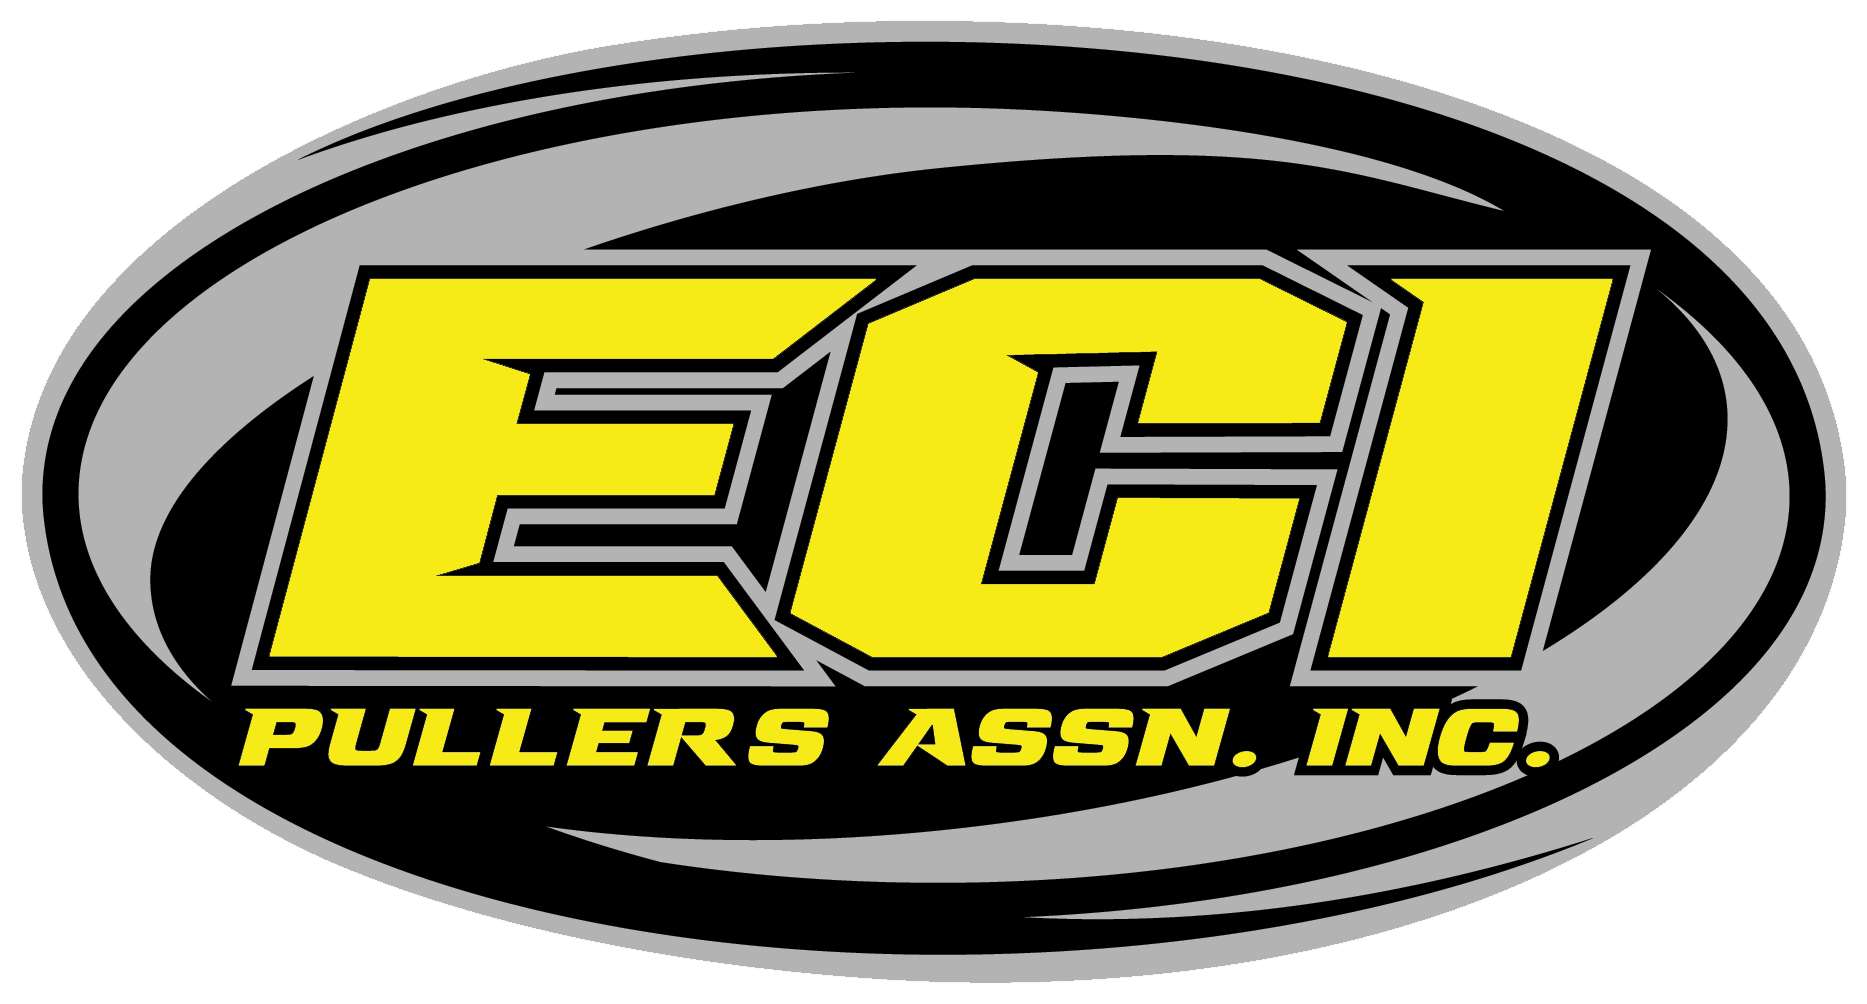 East Central Iowa Pullers Association